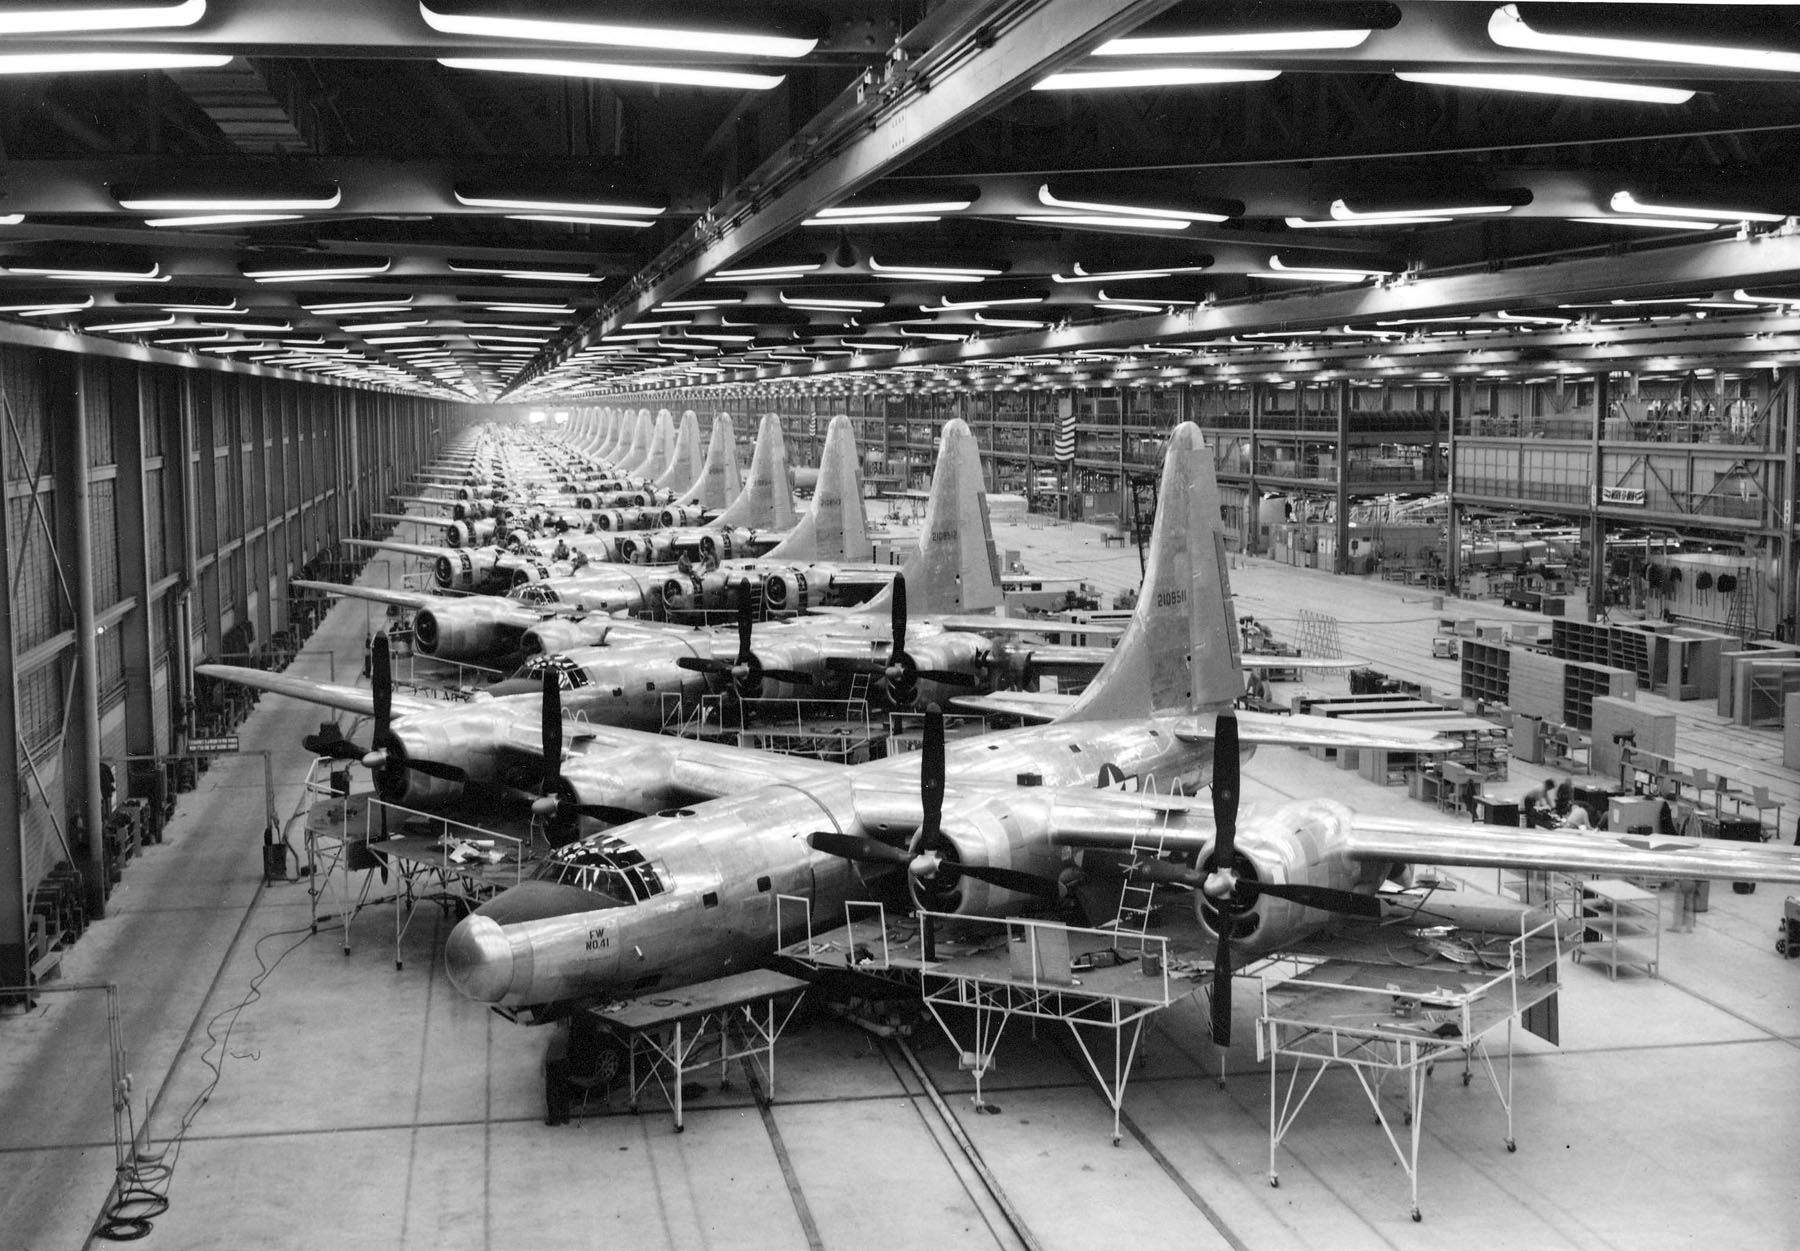 Consolidated B-32 Dominators being built at the Fort Worth, Texas assembly plant, 1944 or 1945.